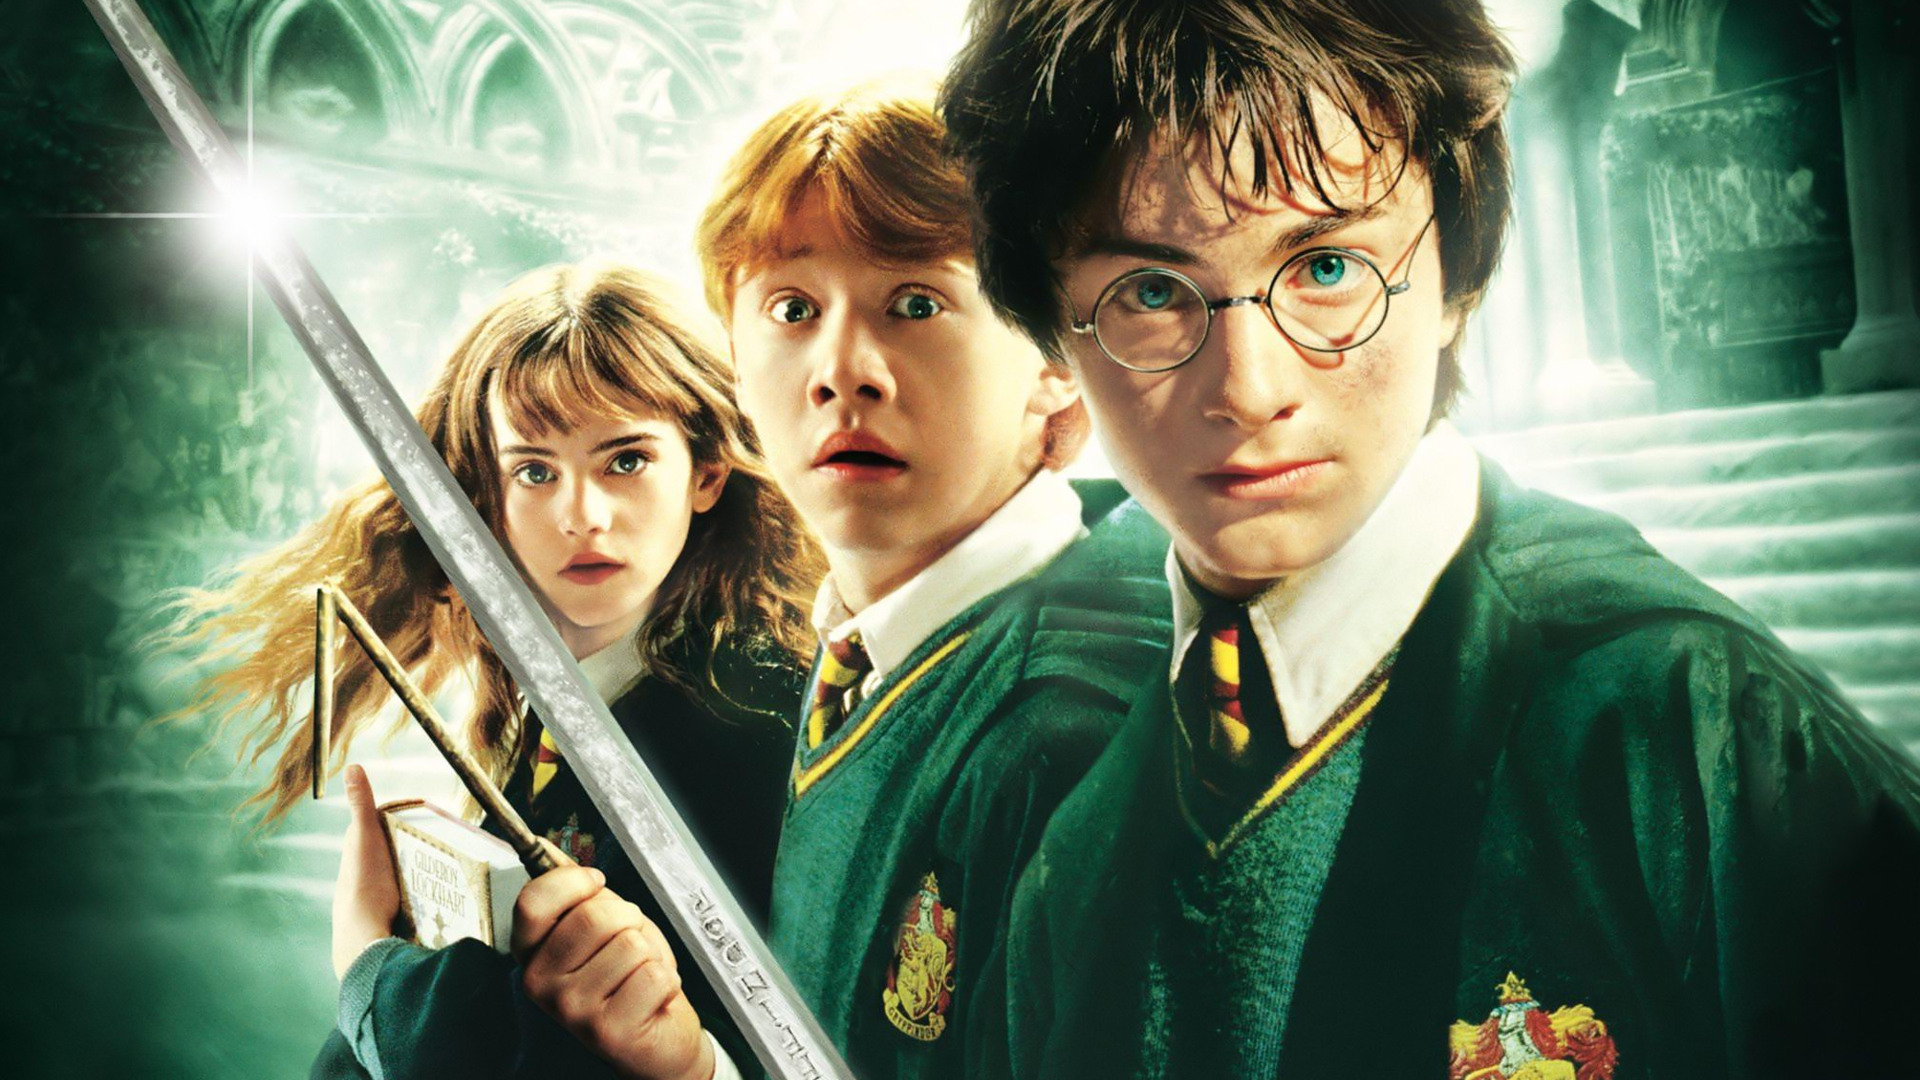 harry potter and the chamber of secrets in concert events  harry potter and the chamber of secrets in concert